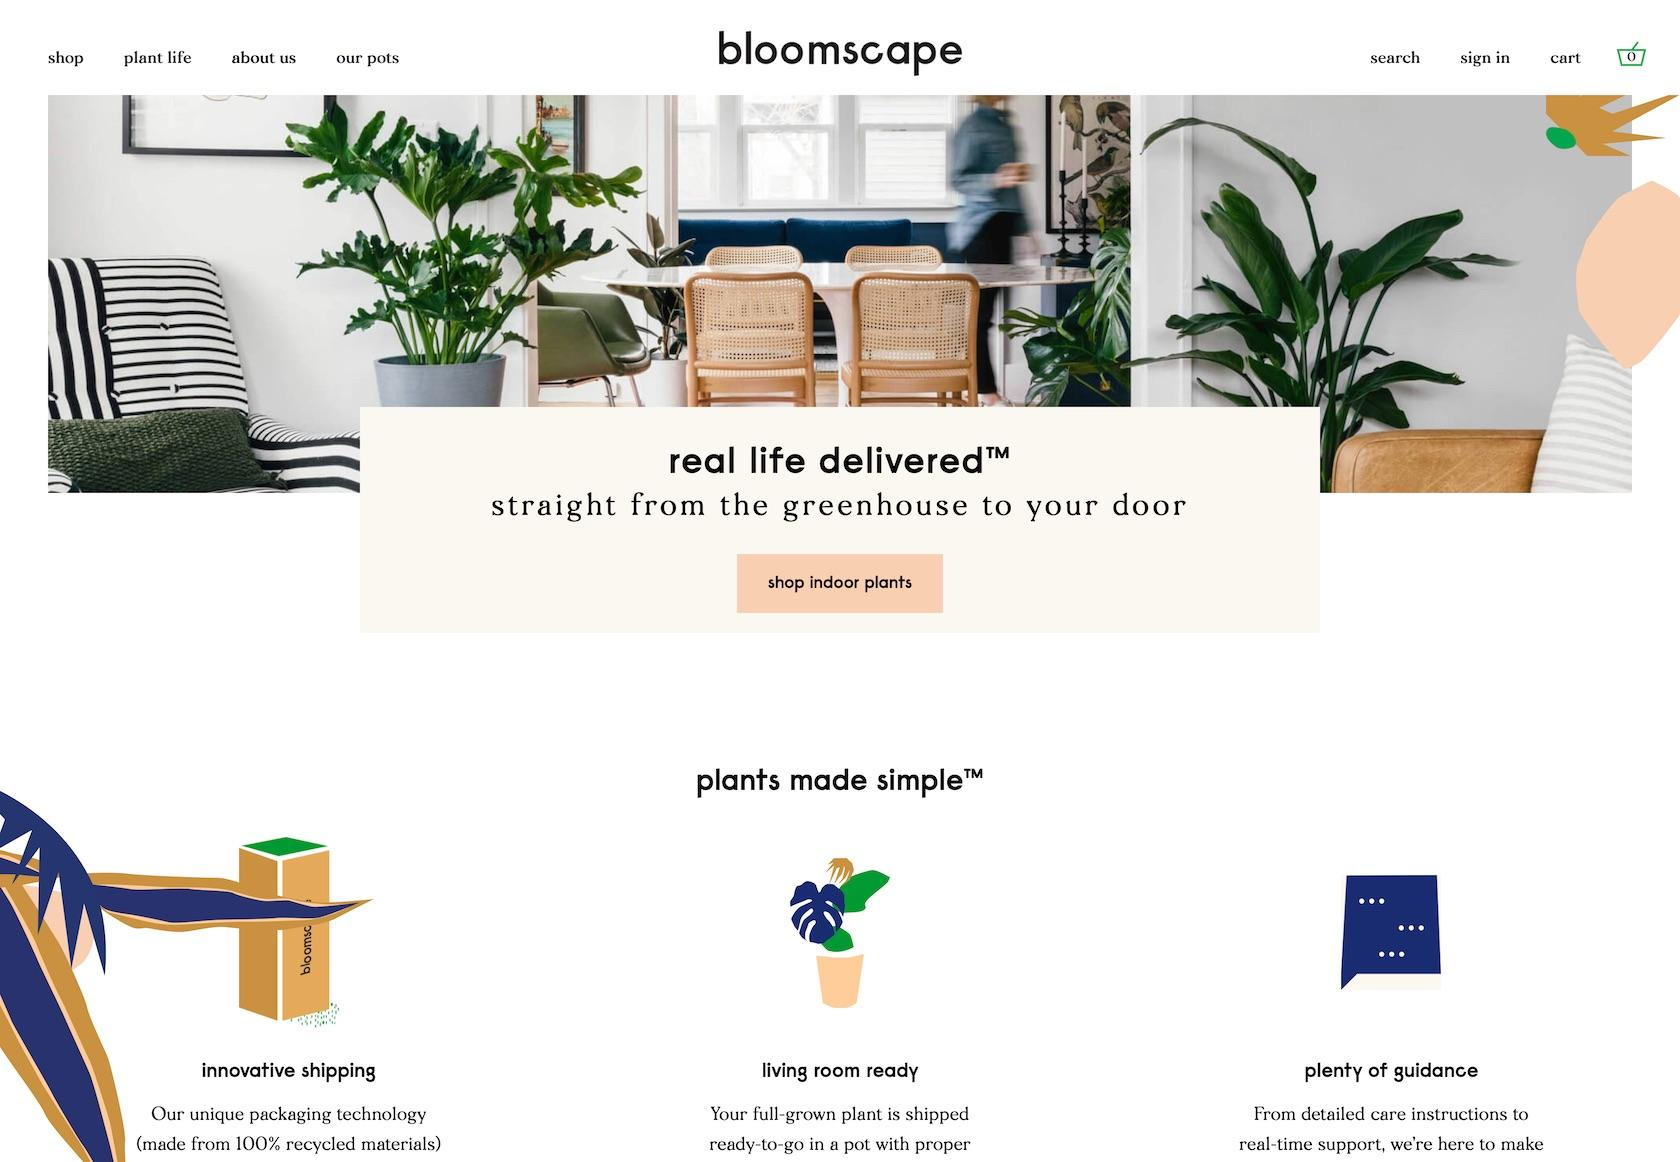 Using different types of fonts: Bloomscape